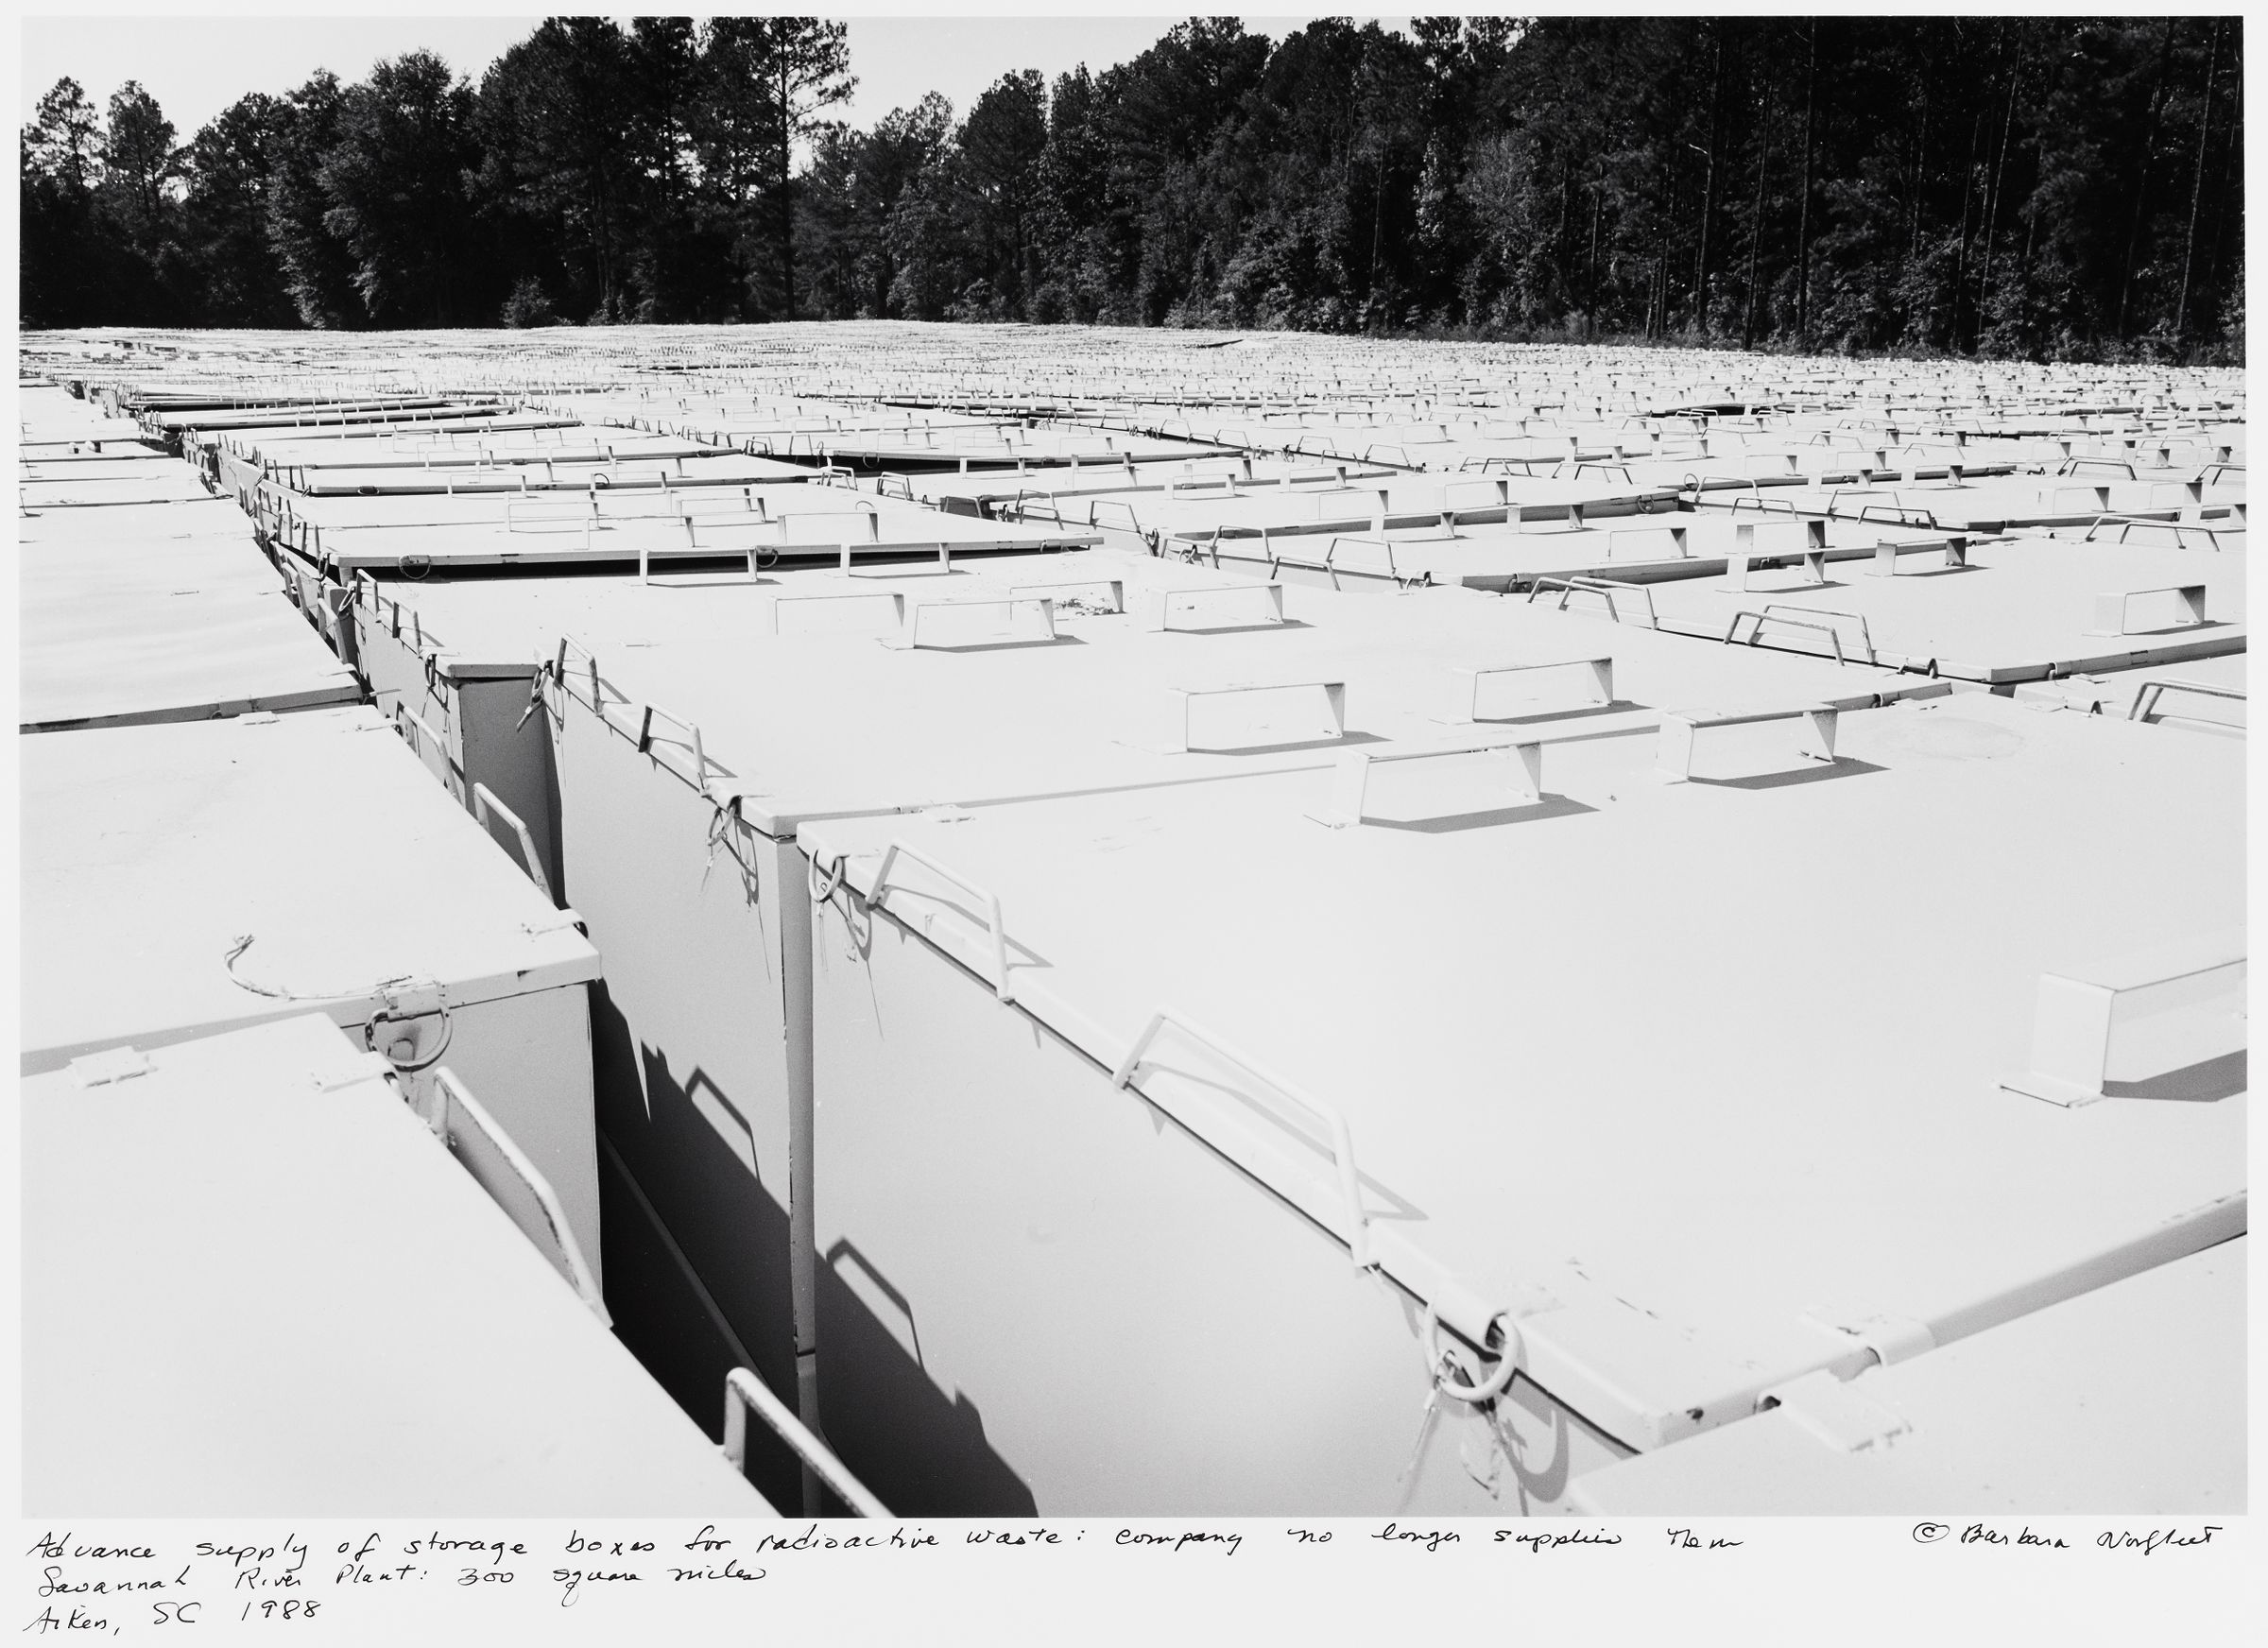 Advance Supply Of Storage Boxes For Radioactive Waste: Company No Longer Supplies Them, Savannah River Plant: 300 Square Miles, Aiken, Sc